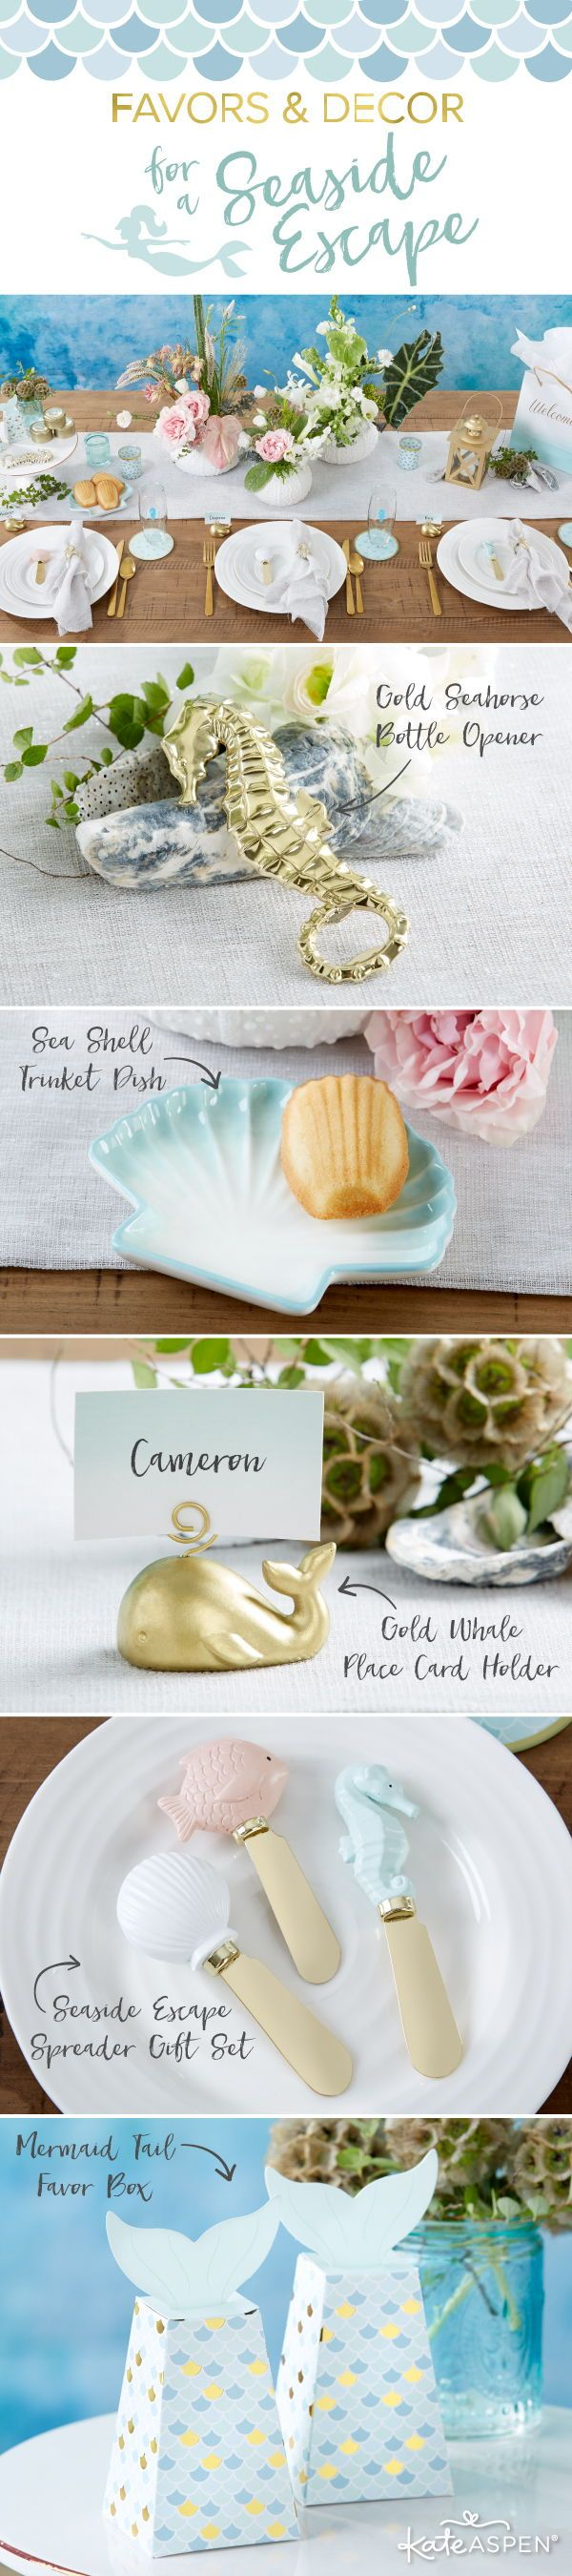 217 best Beach Wedding images on Pinterest | A mermaid, Amazing ...